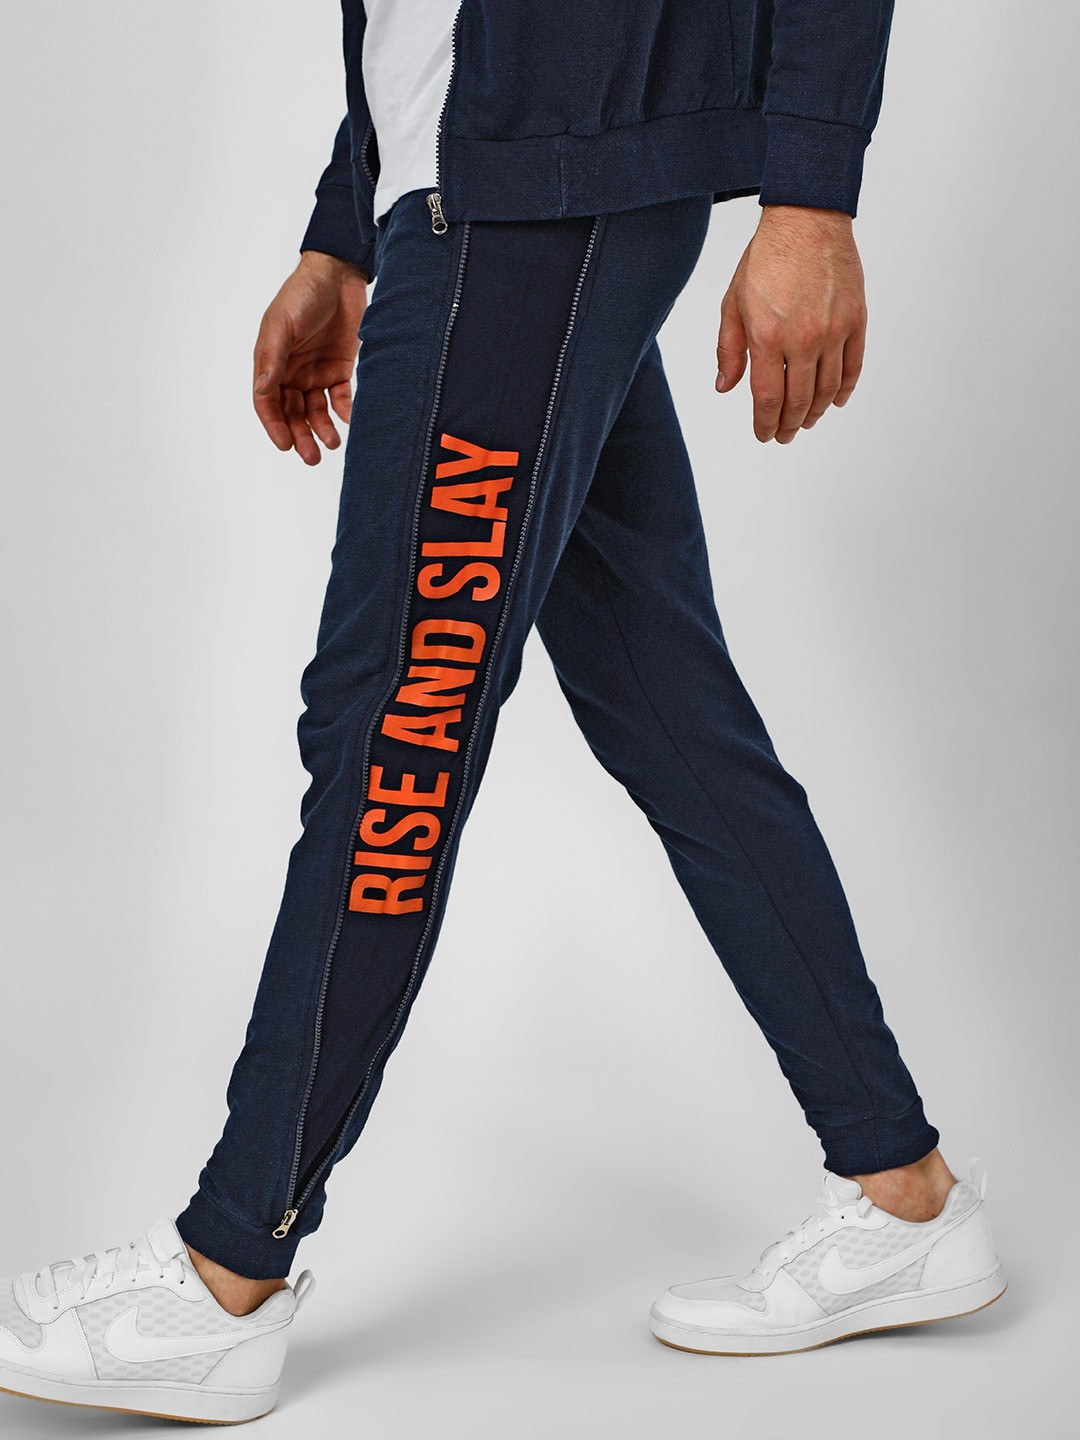 Garcon Blue Light Washed Slogan Joggers 1